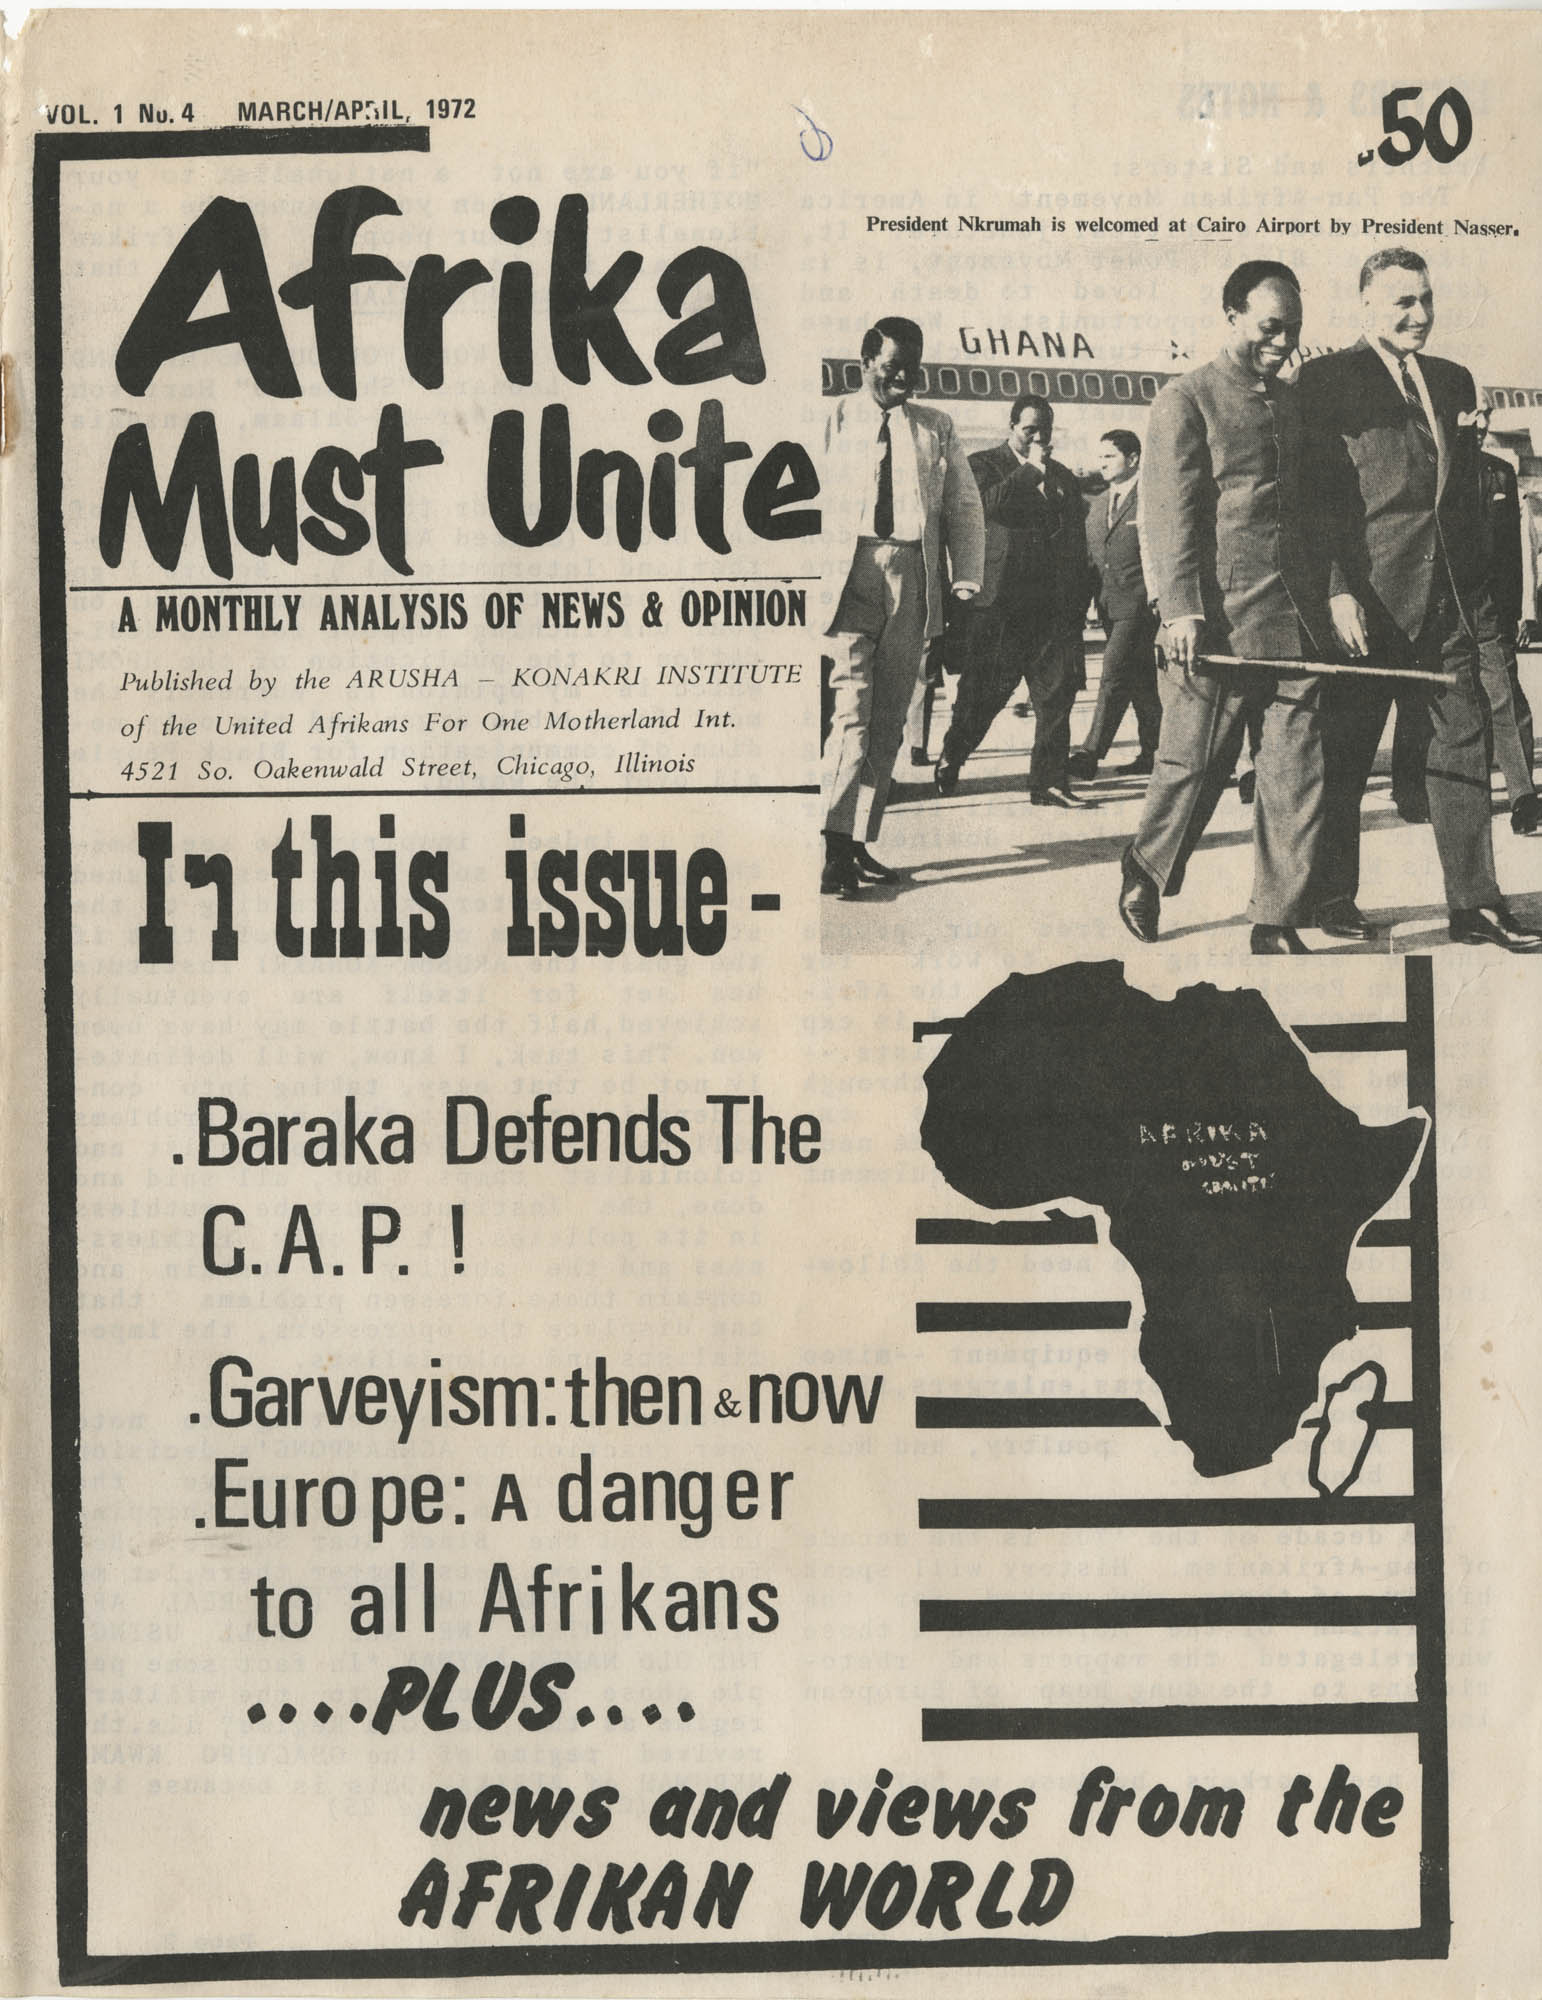 Afrika Must Unite, Vol. 1, No. 4, Cover